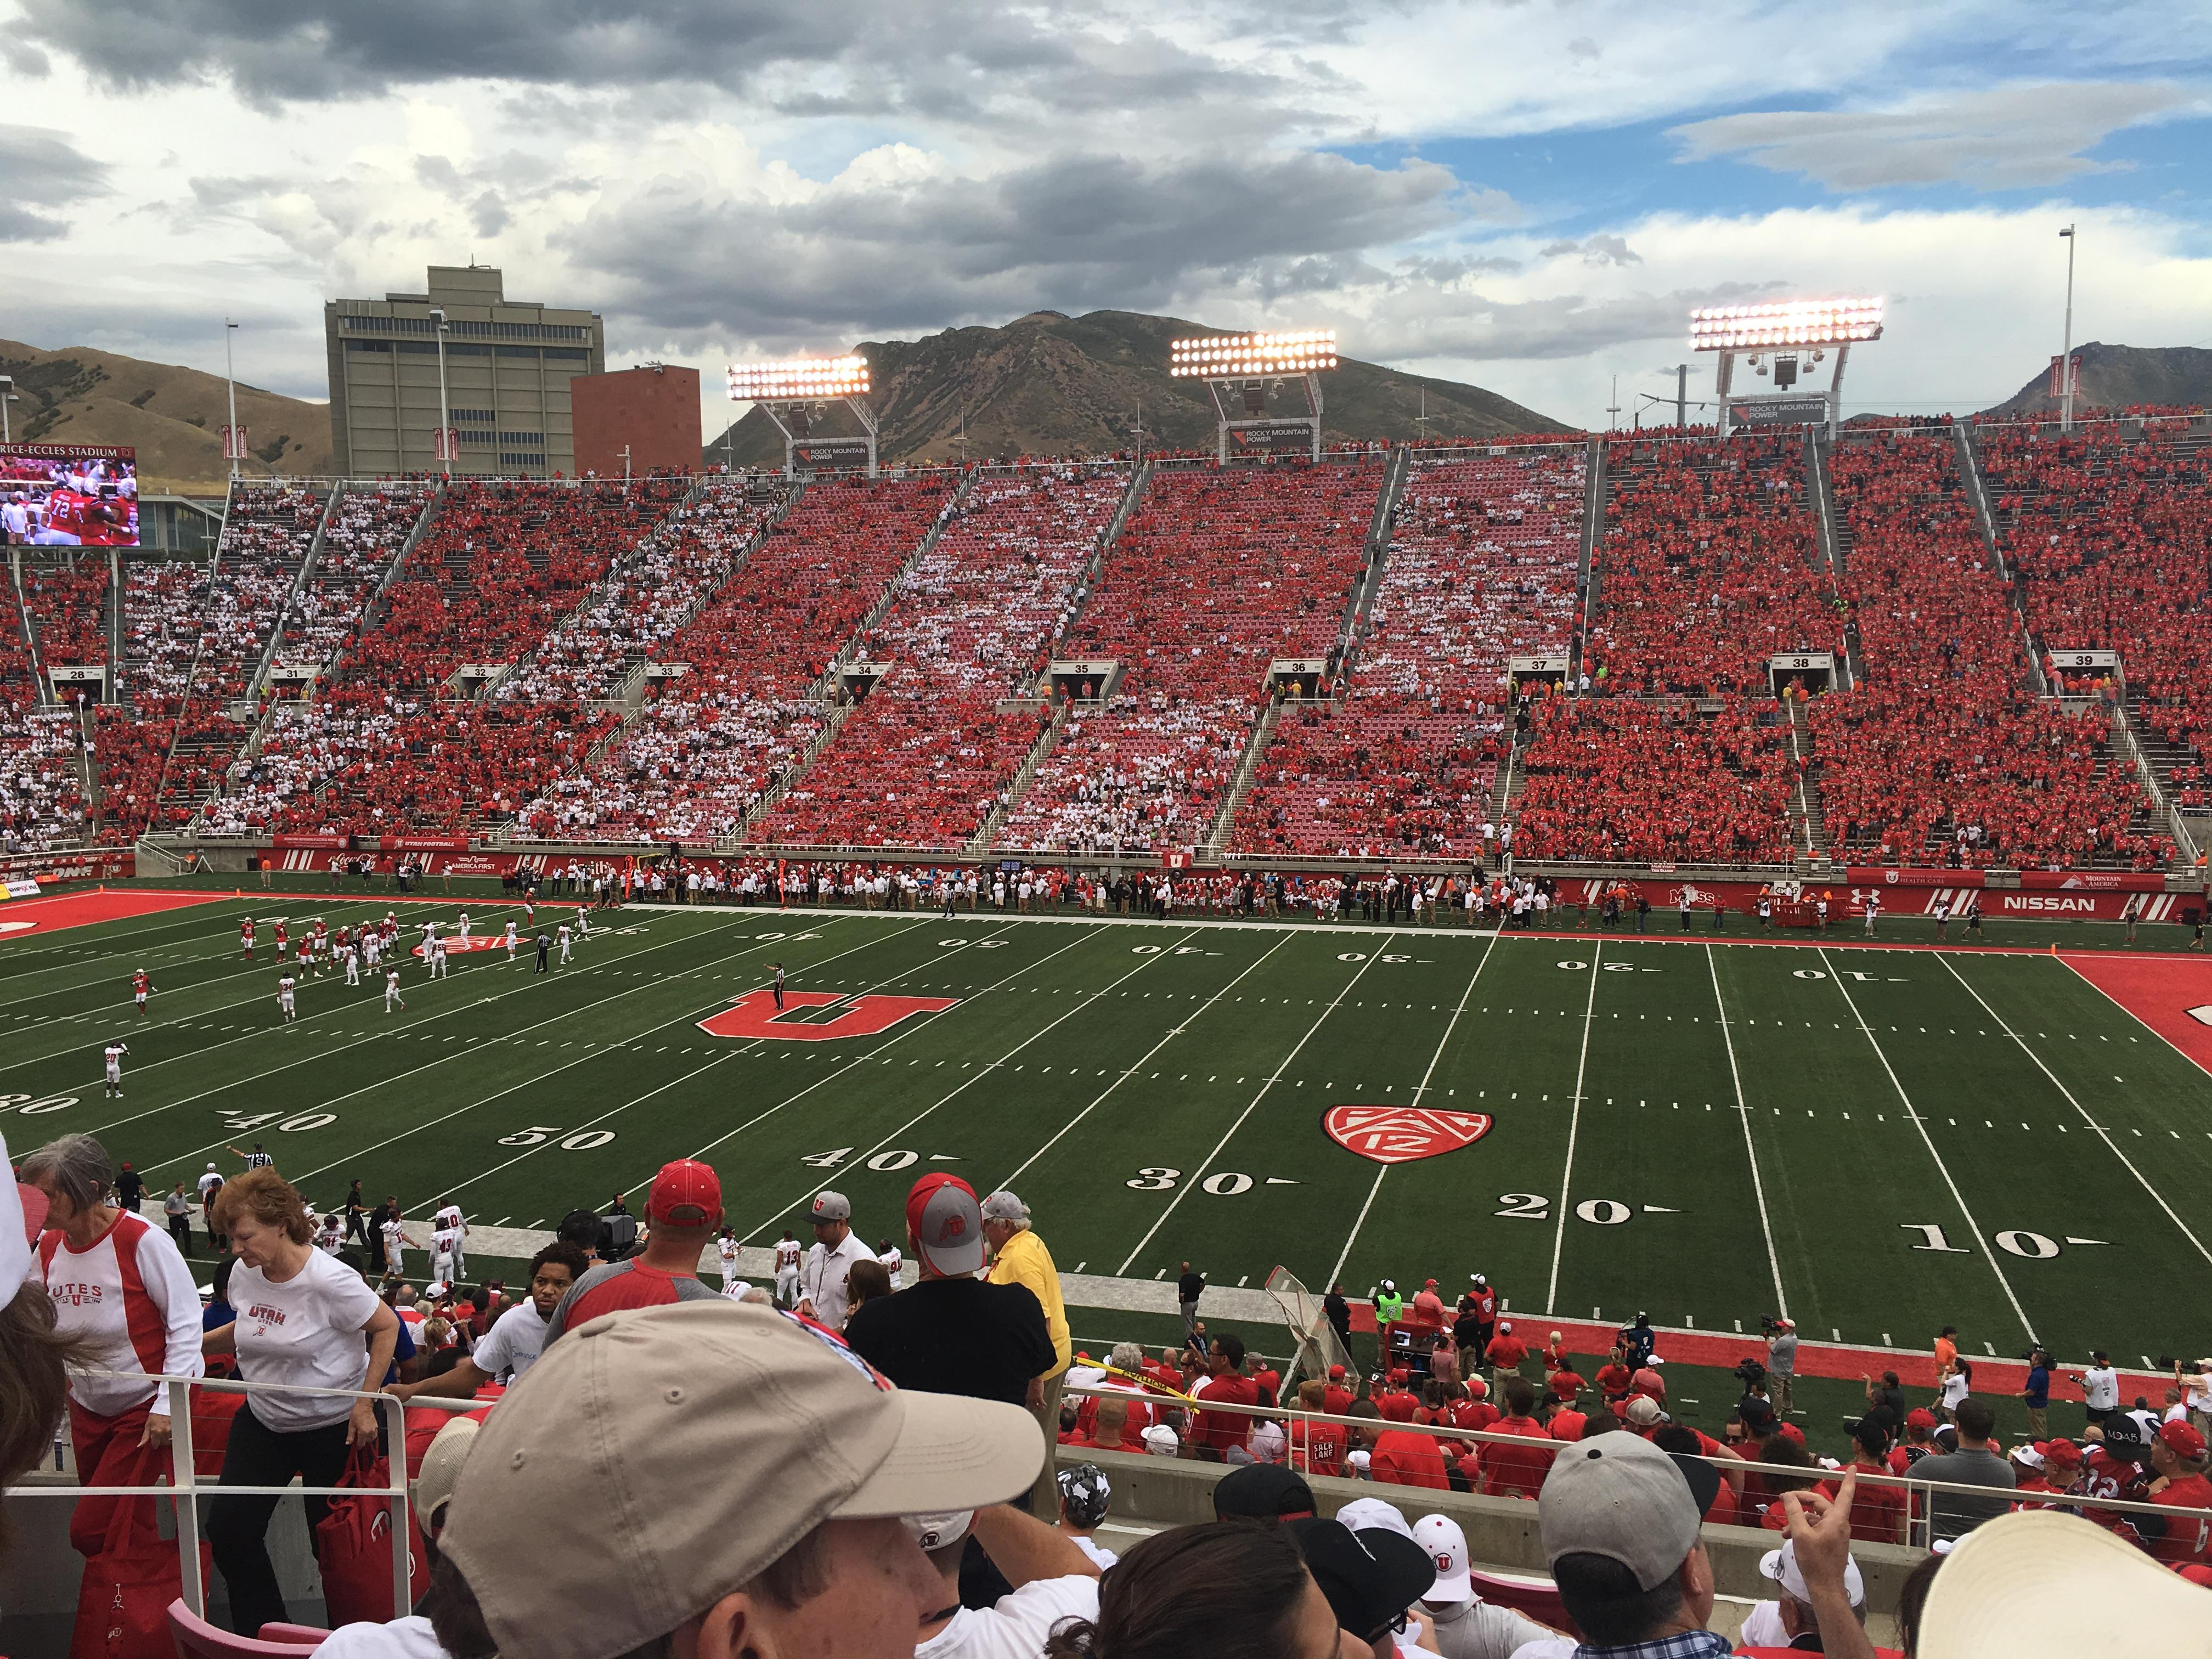 Rice-Eccles Stadium Section W10 Row 33 Seat 12